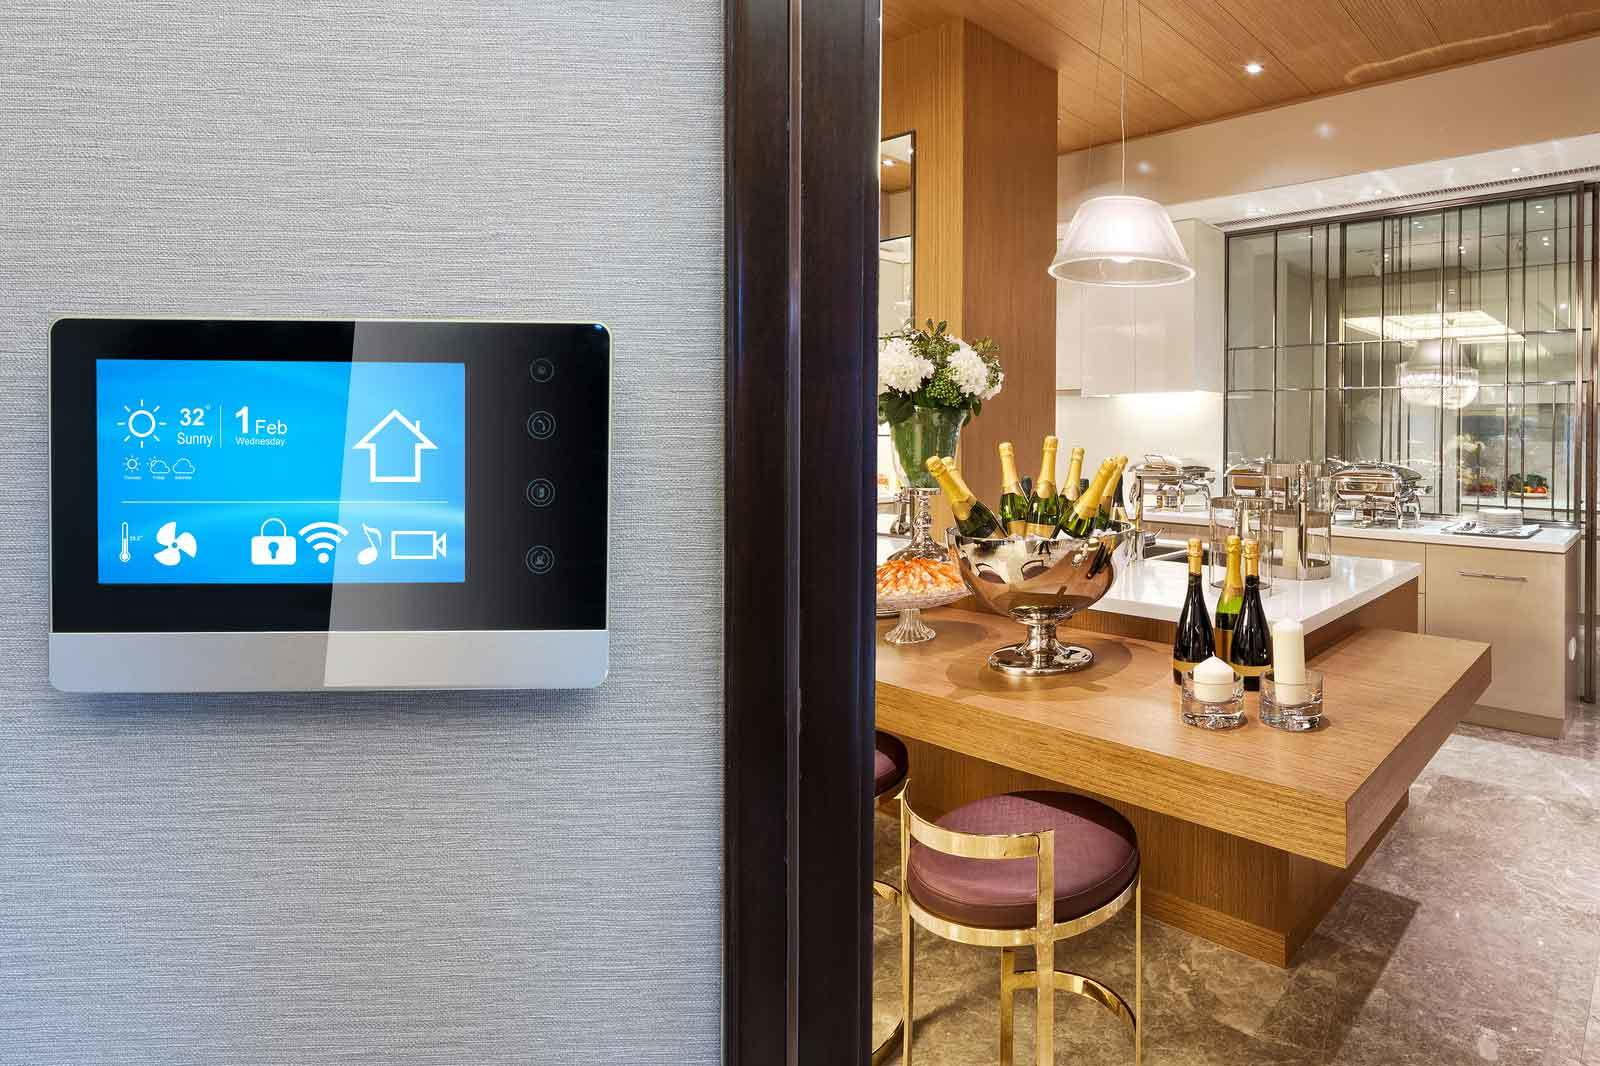 Thermostat smart screen with smart home